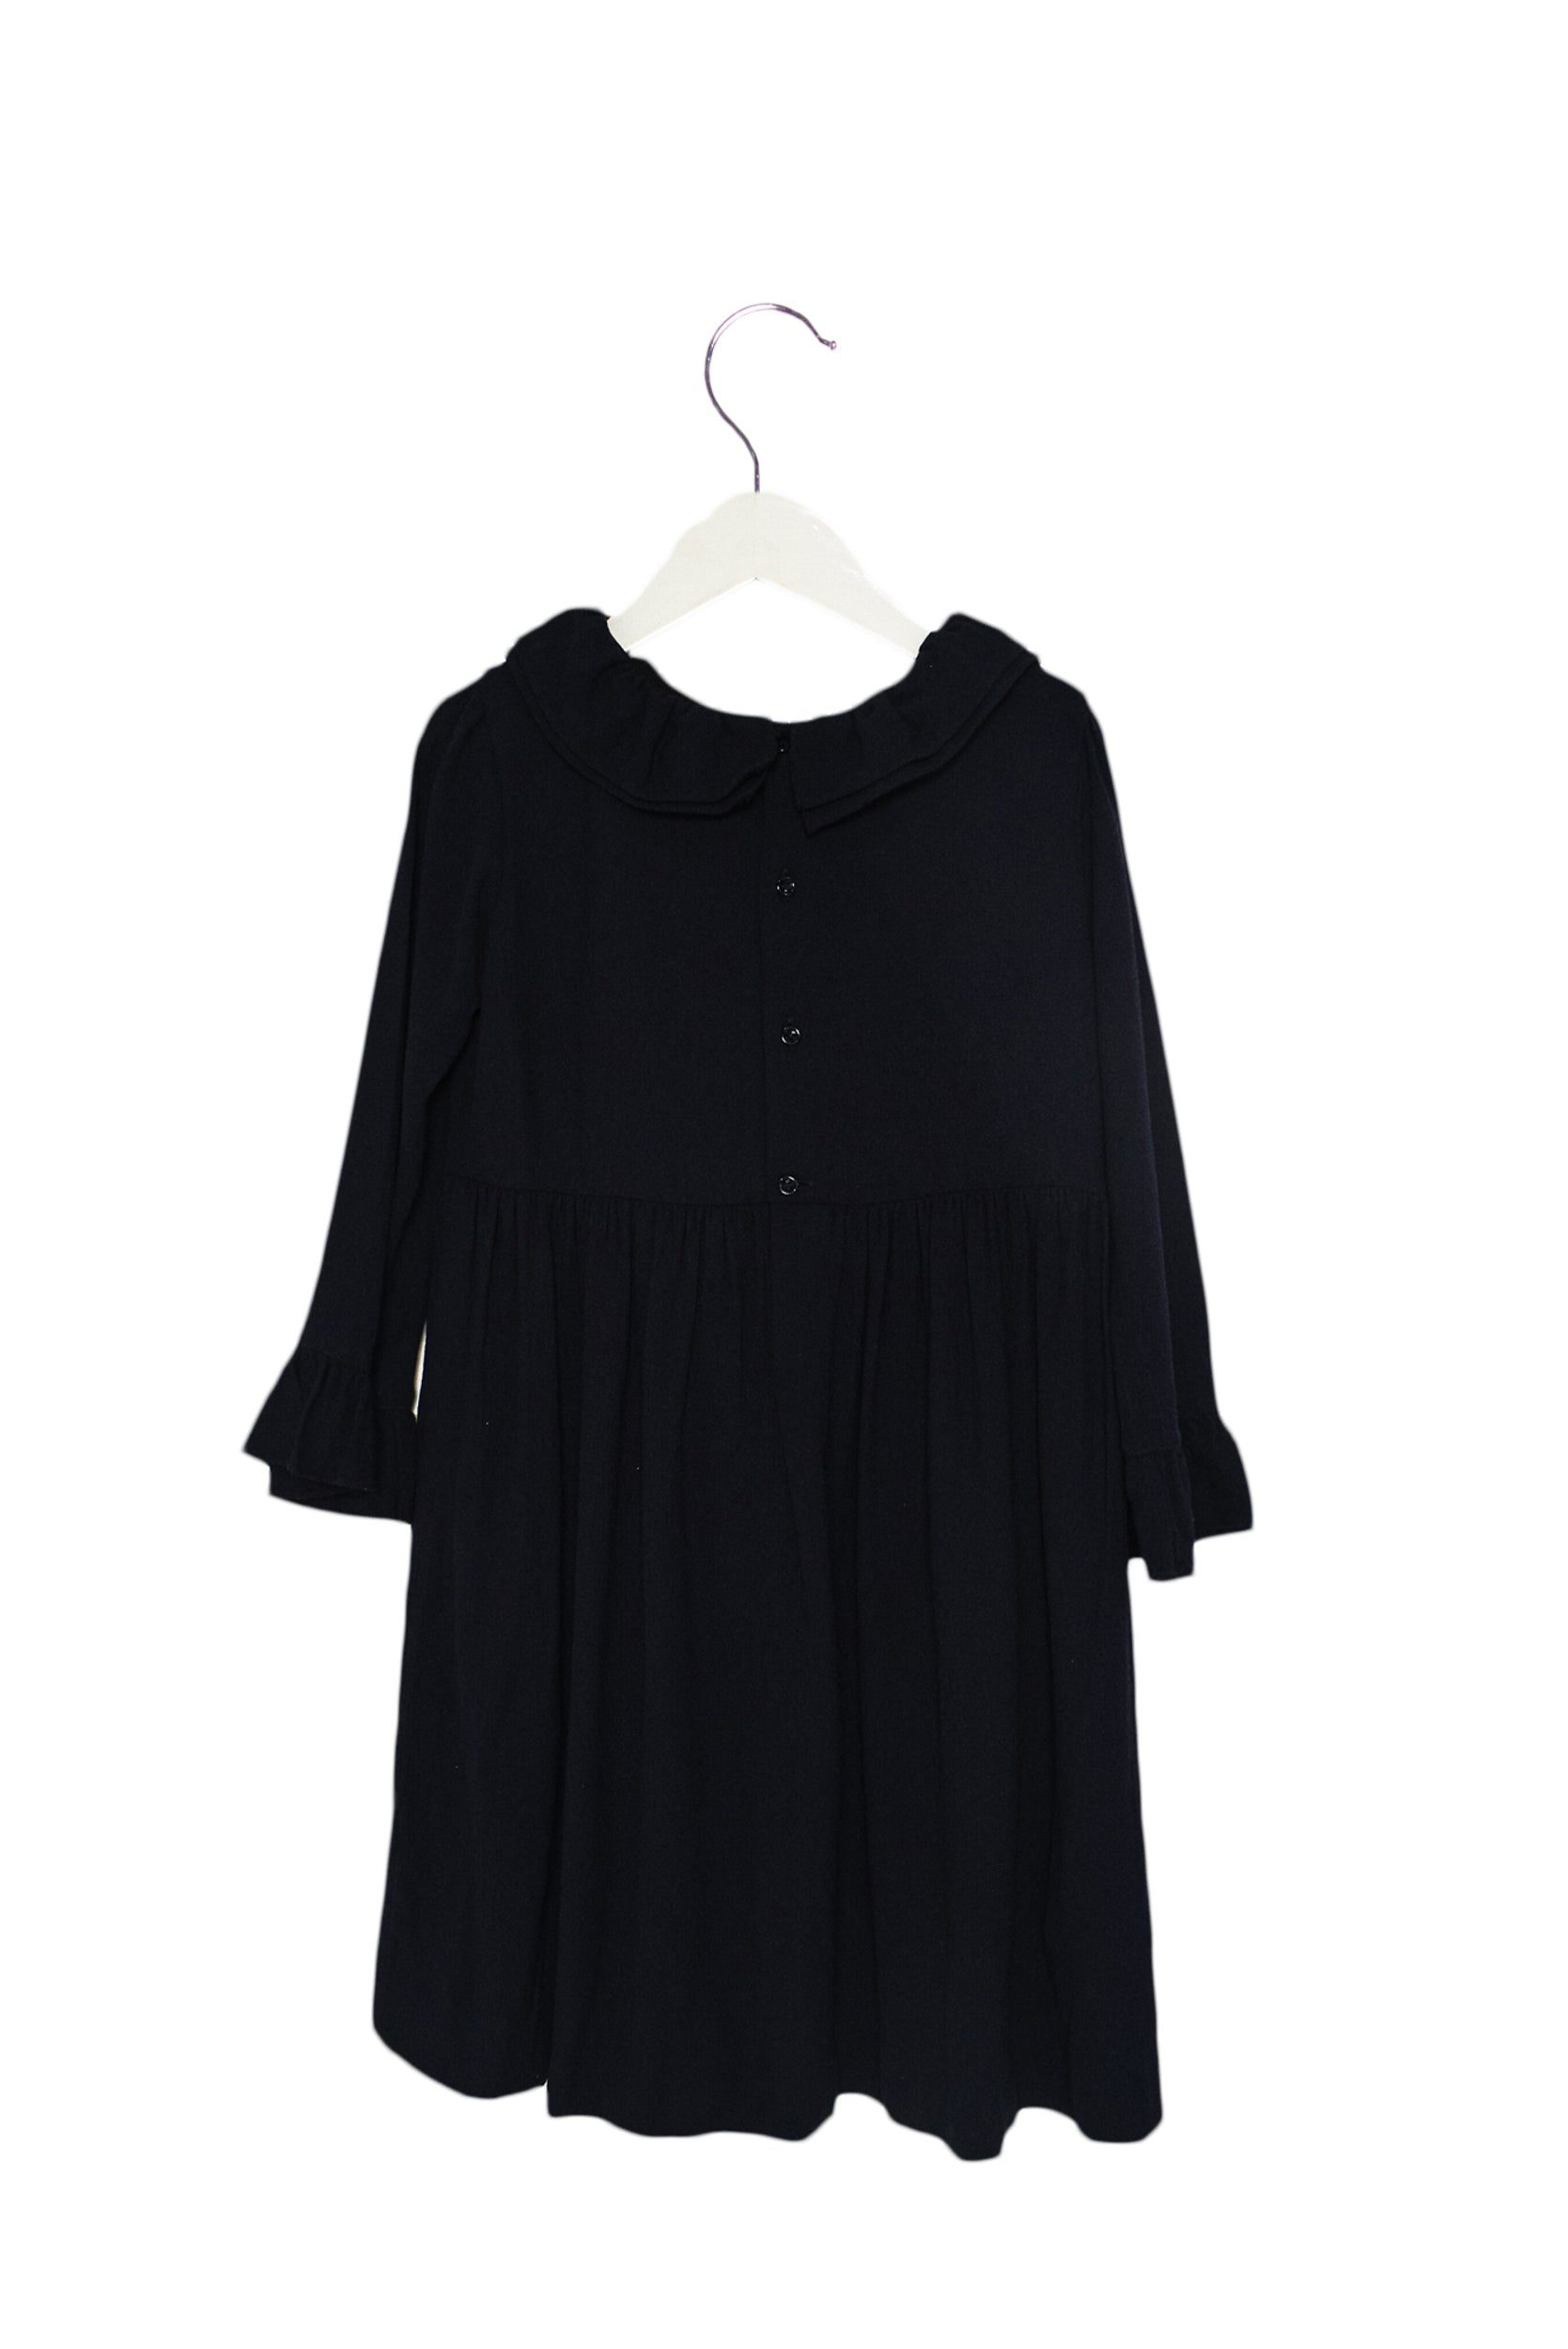 Long Sleeve Dress 8Y at Retykle